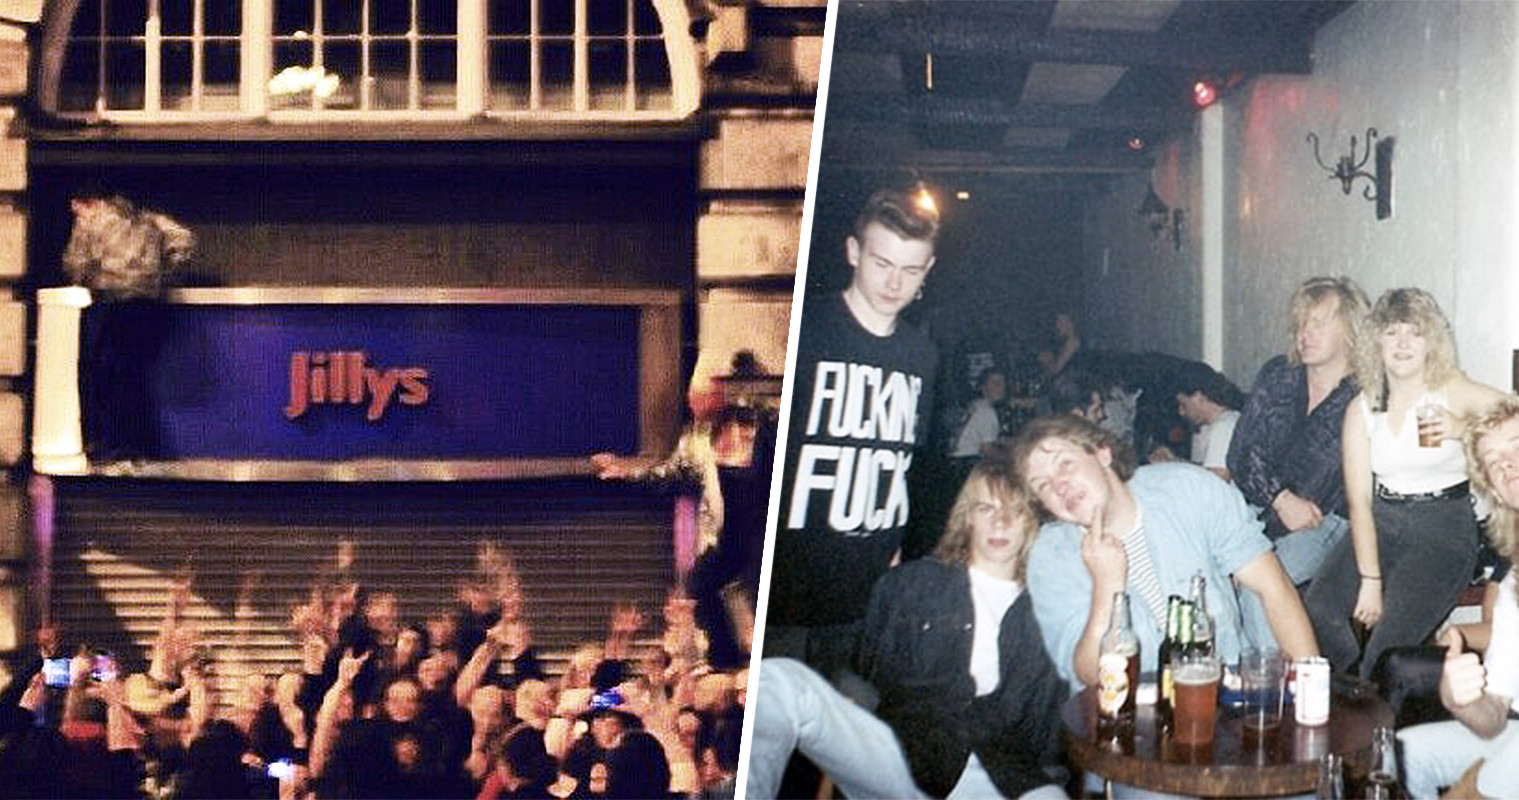 You can now revisit Jilly's Rockworld after a genius Manchester lad recreated it in VR, The Manc